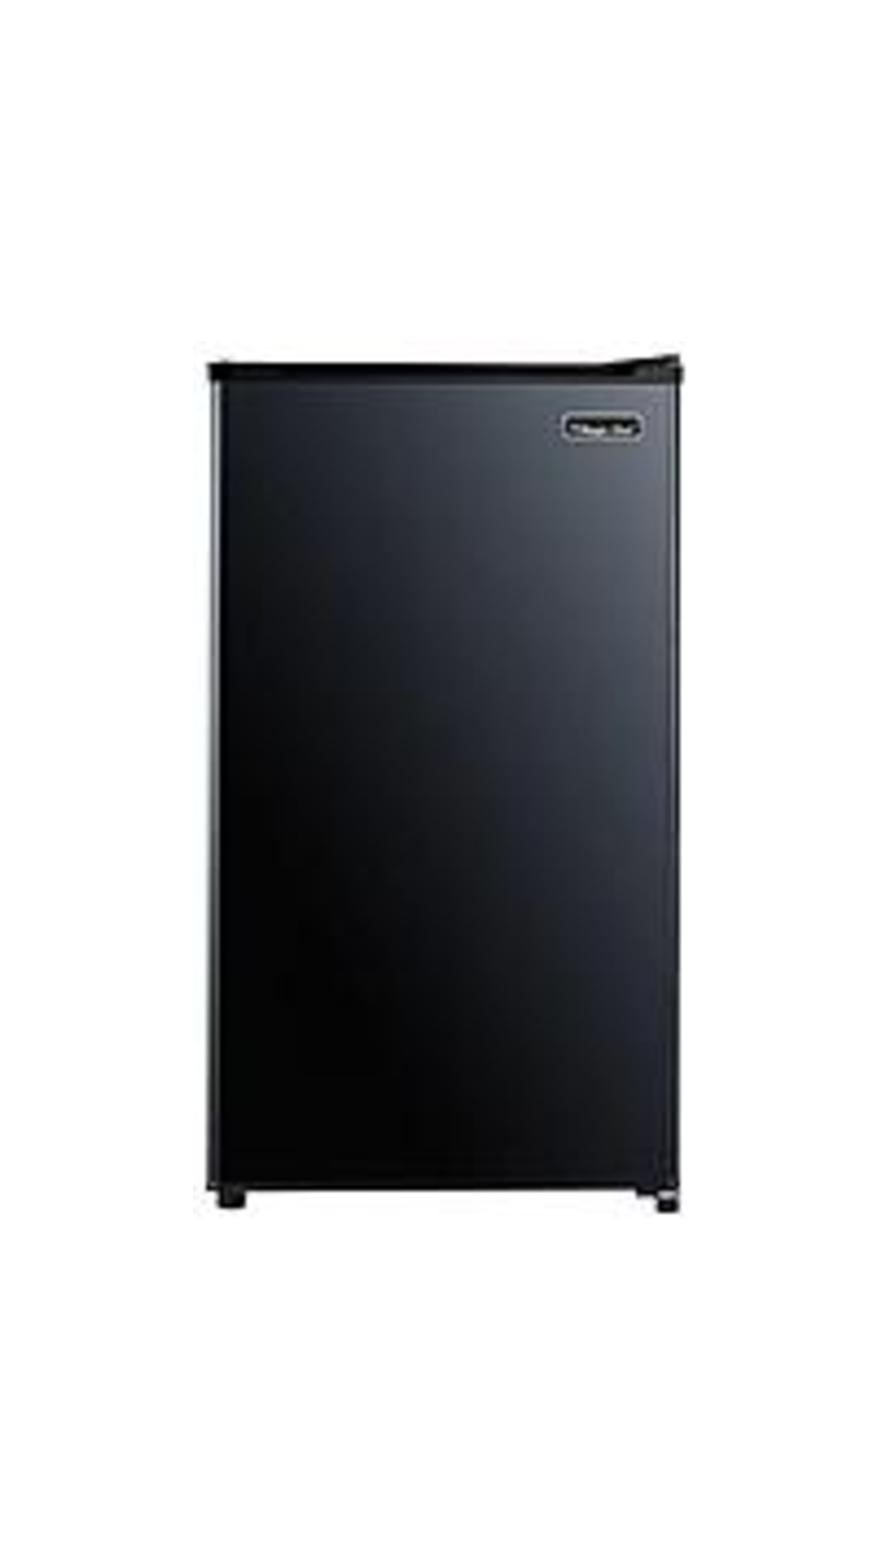 Magic Chef 3.2 Cu. Ft. Compact Refrigerator Black MCAR320B2